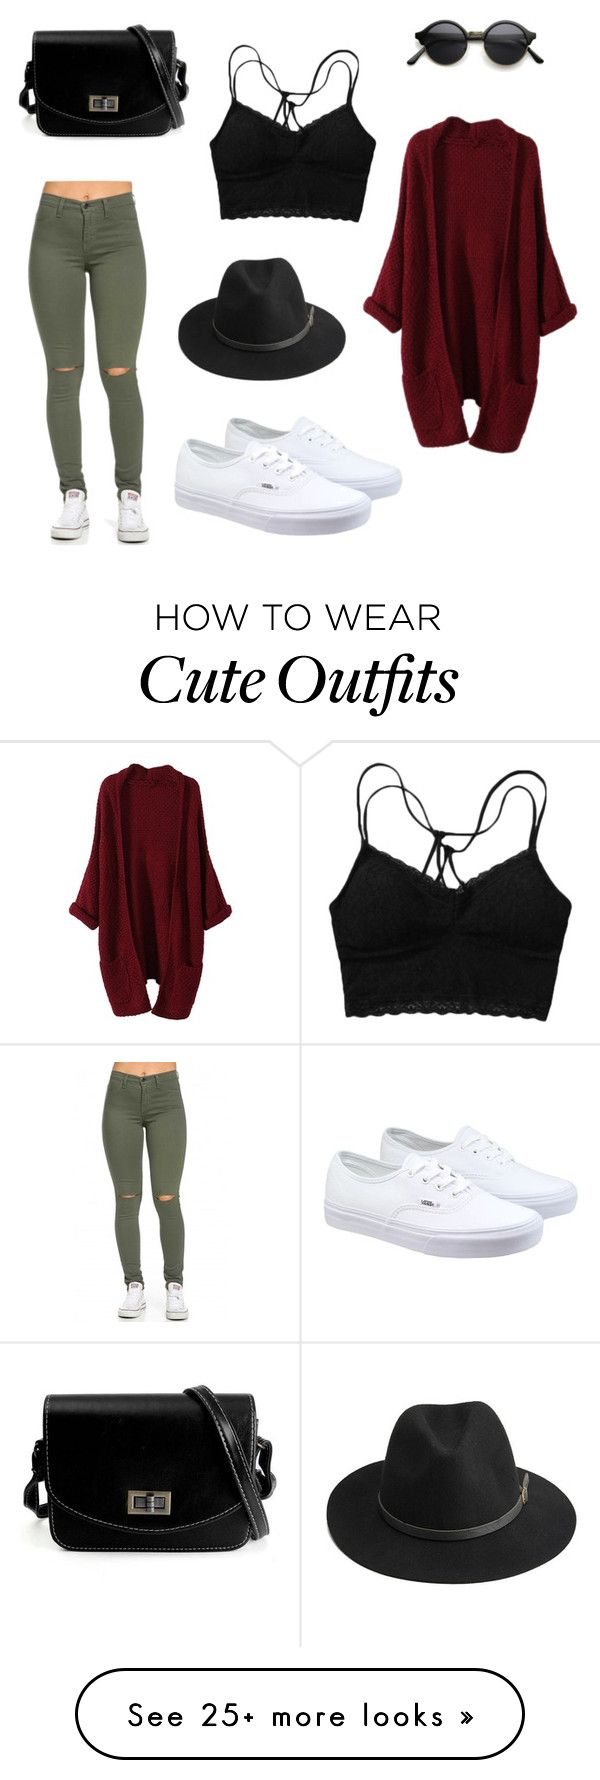 17+ best ideas about Comfortable Winter Outfits on Pinterest | Comfy sweater Winter clothes and ...